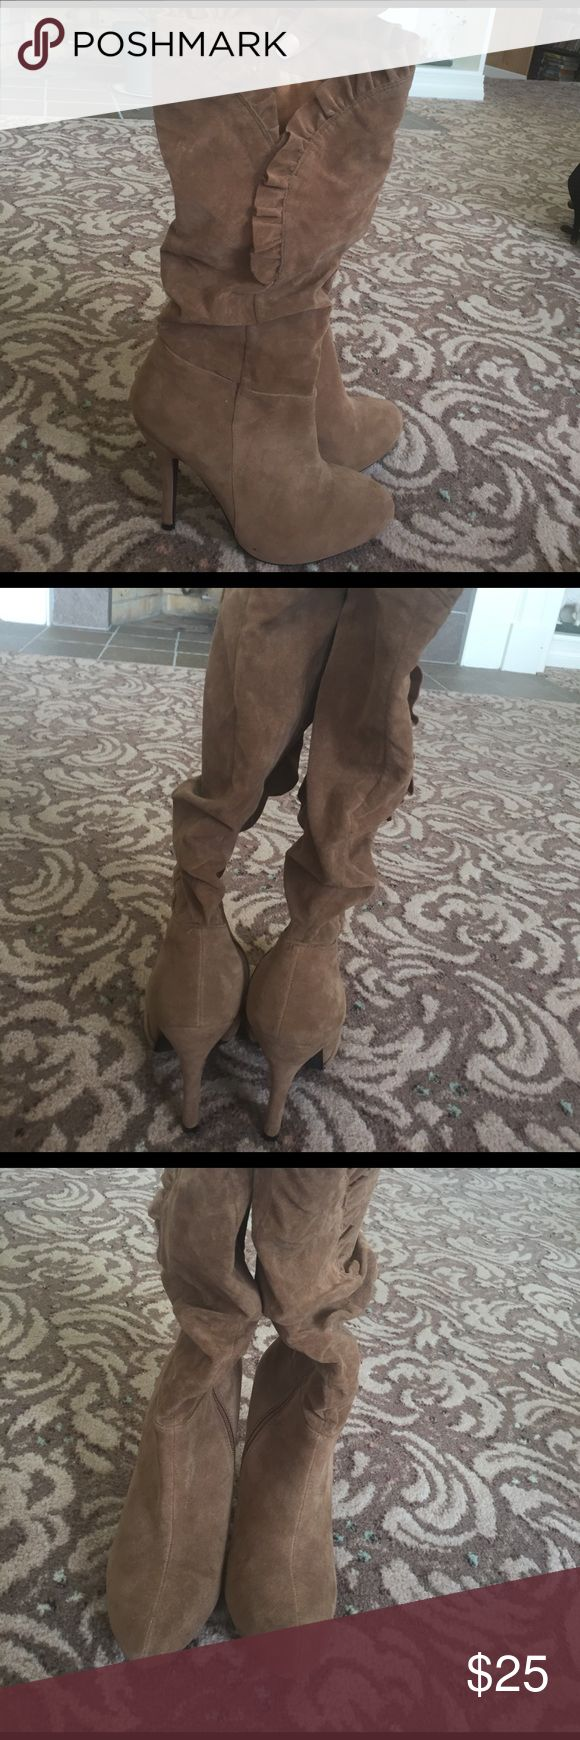 TAN HIGH HEEL BOOTS Tan high heels almost never worn. Great condition Journee Collection Shoes Heeled Boots